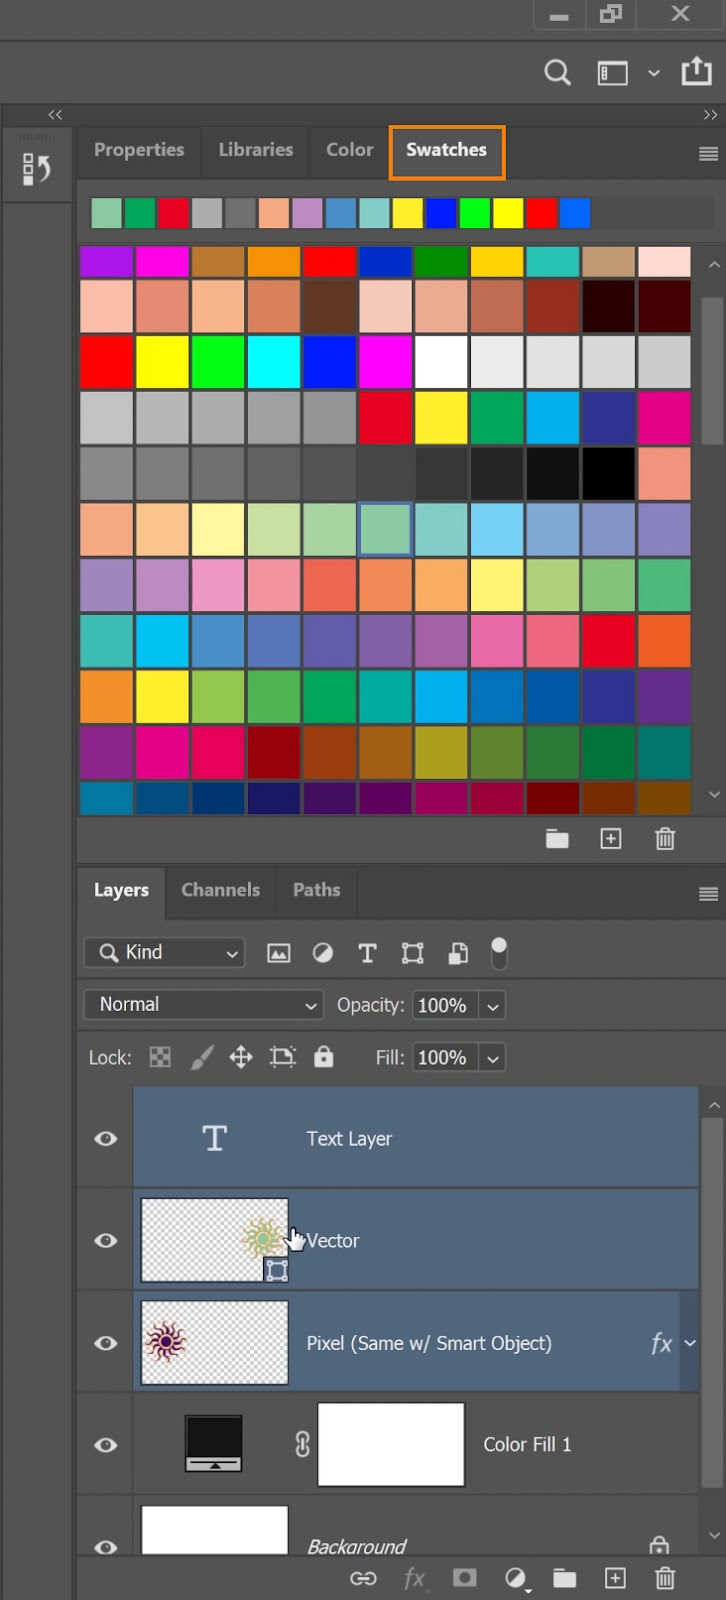 Select a color from the Swatches panel